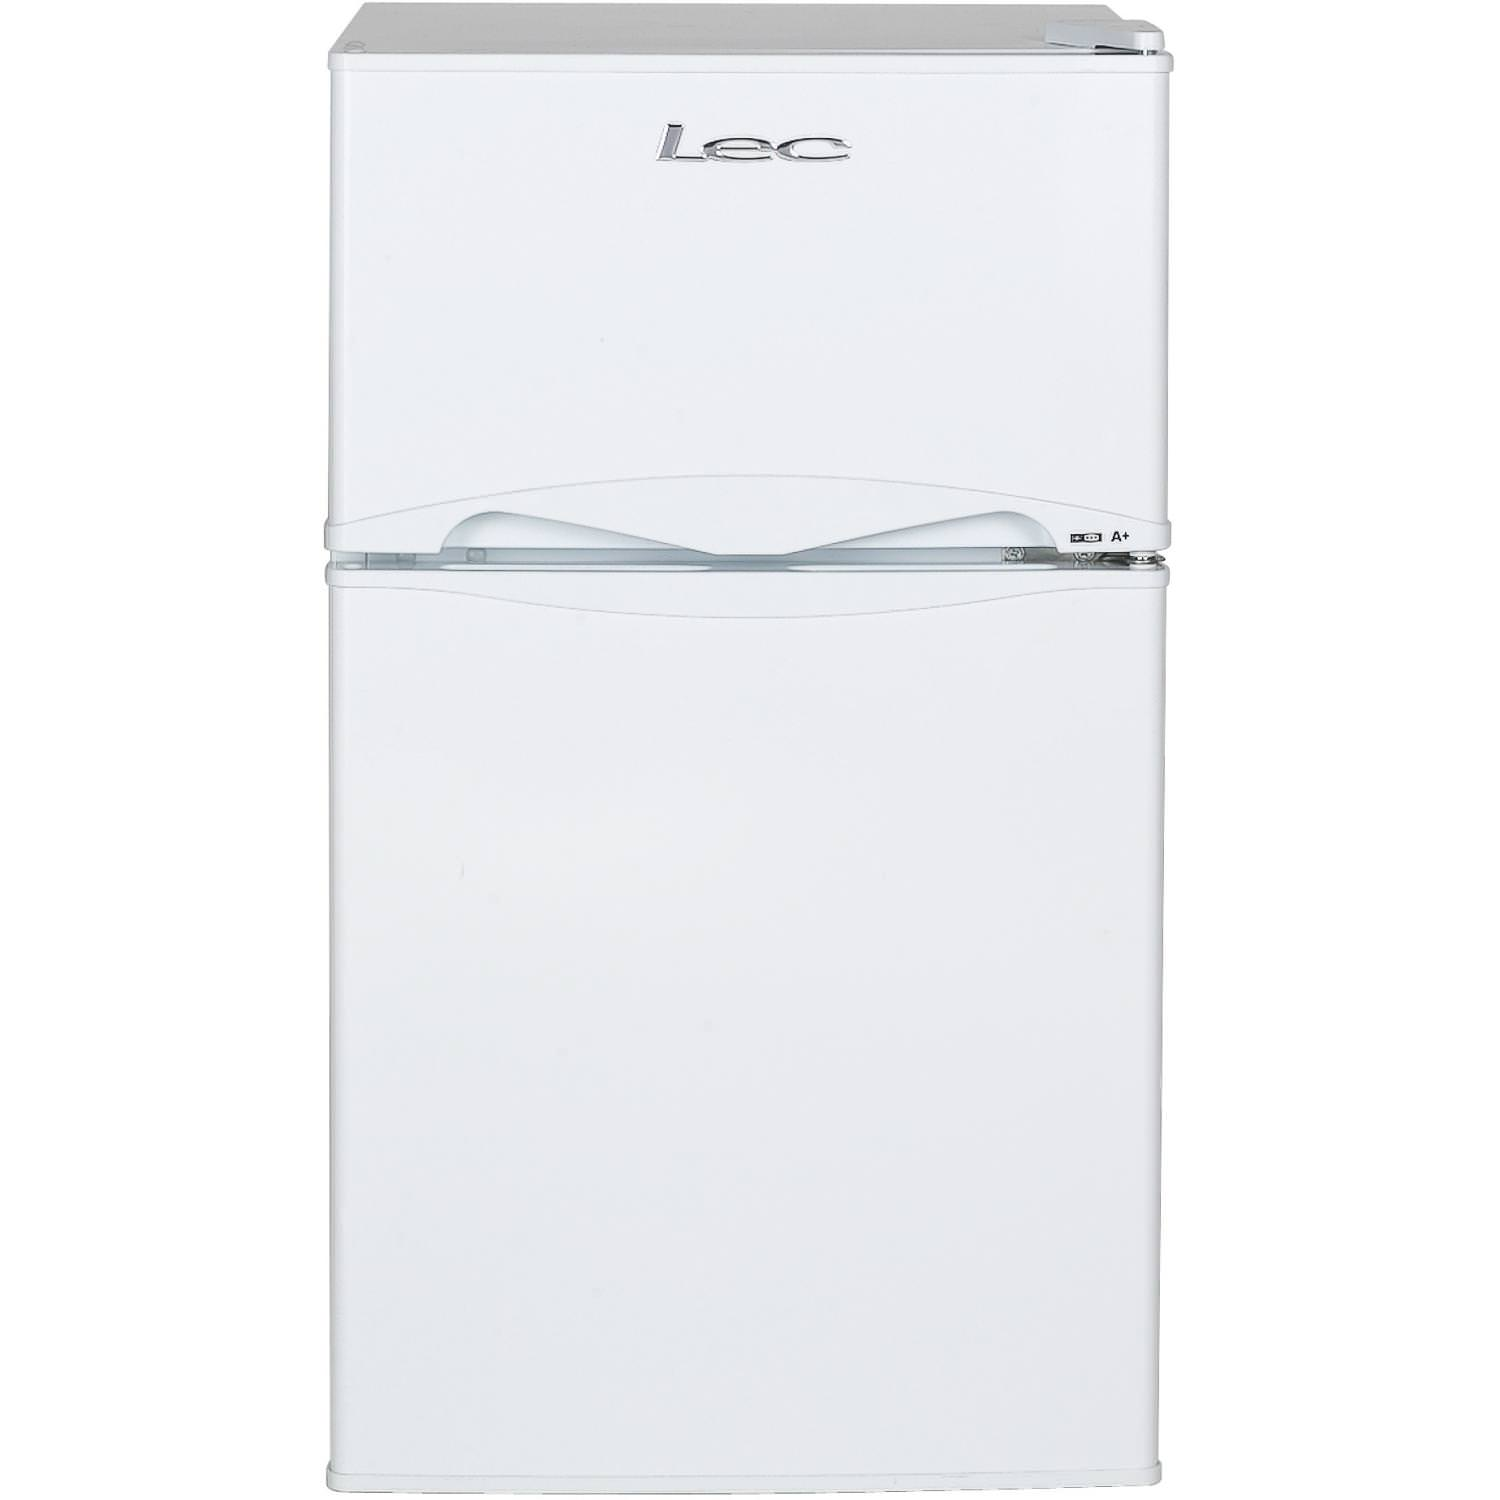 LEC T50084W 87 Litre Auto Defrost Freestanding Under Counter Fridge Freezer